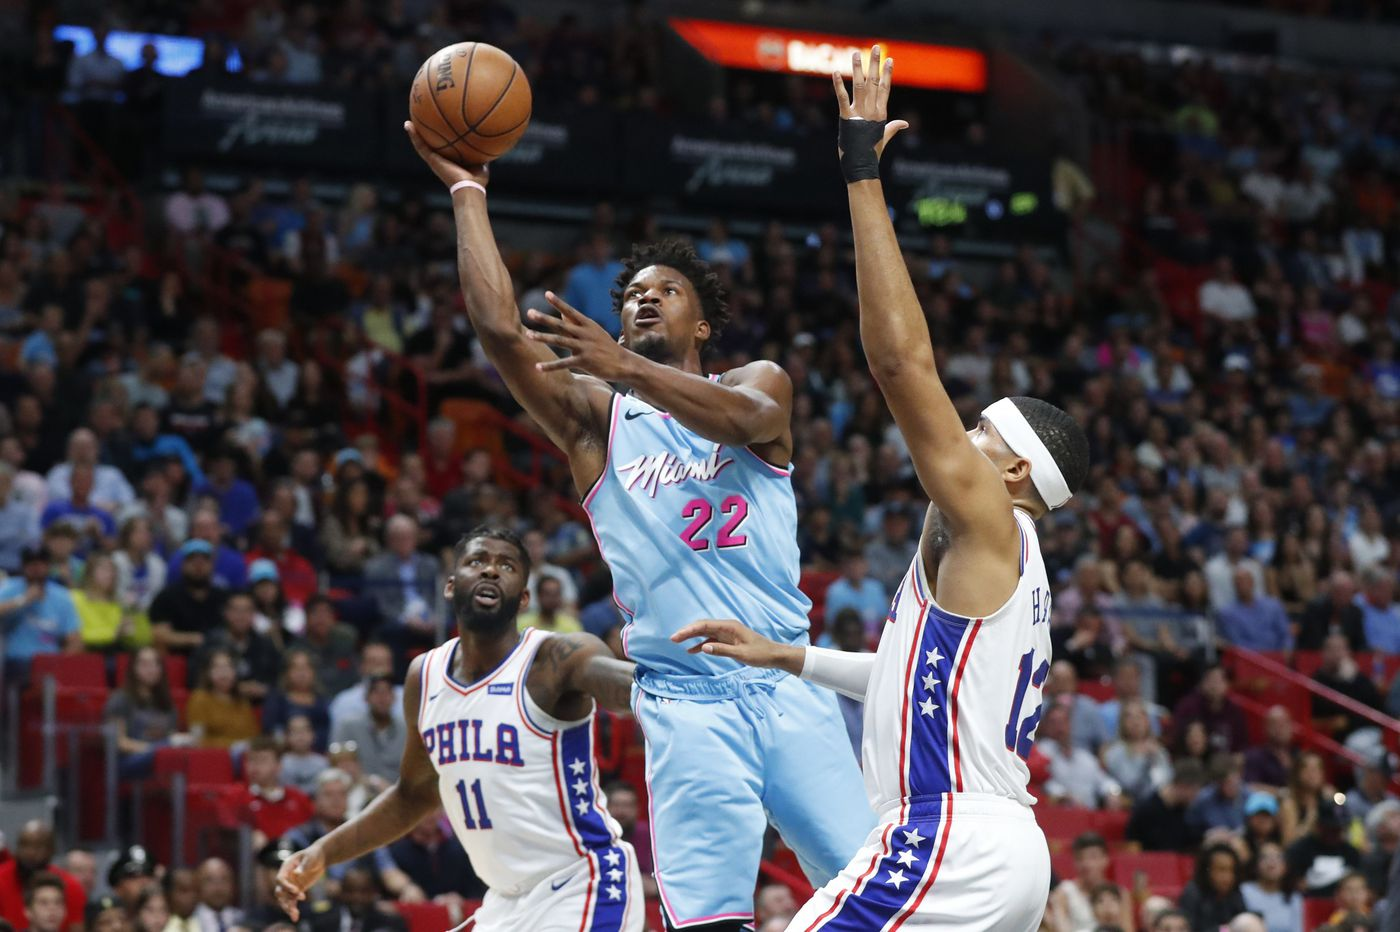 Jimmy Butler's foul shot lifts Heat over Sixers, 117-116, in overtime